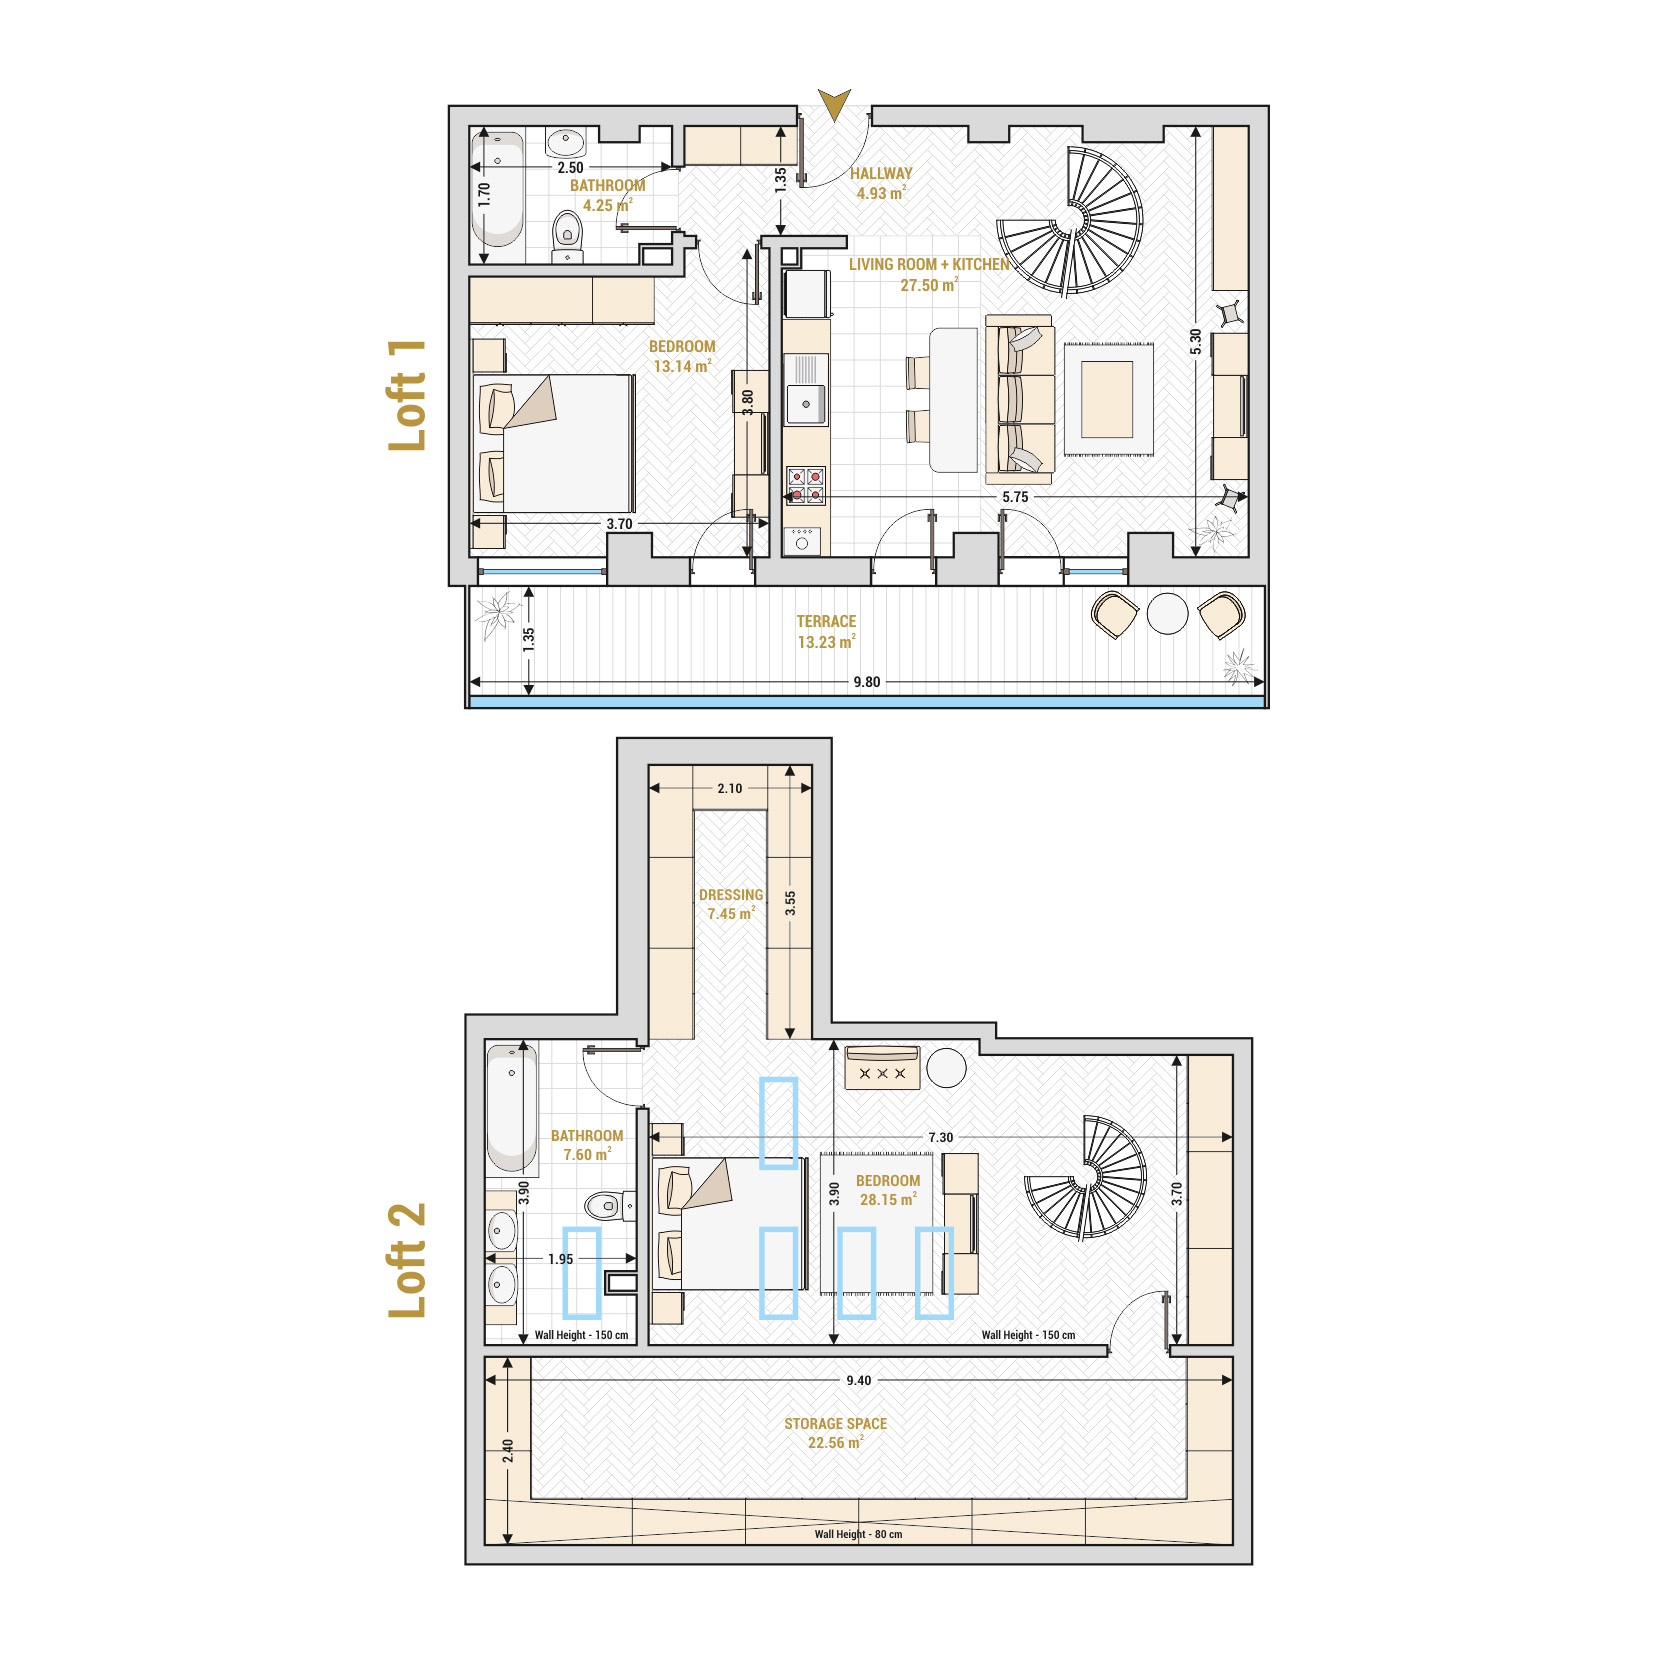 Catedral Residence - 3 Room Duplex Apartment for Sale - Bucharest - Romania - Type 1 – S2